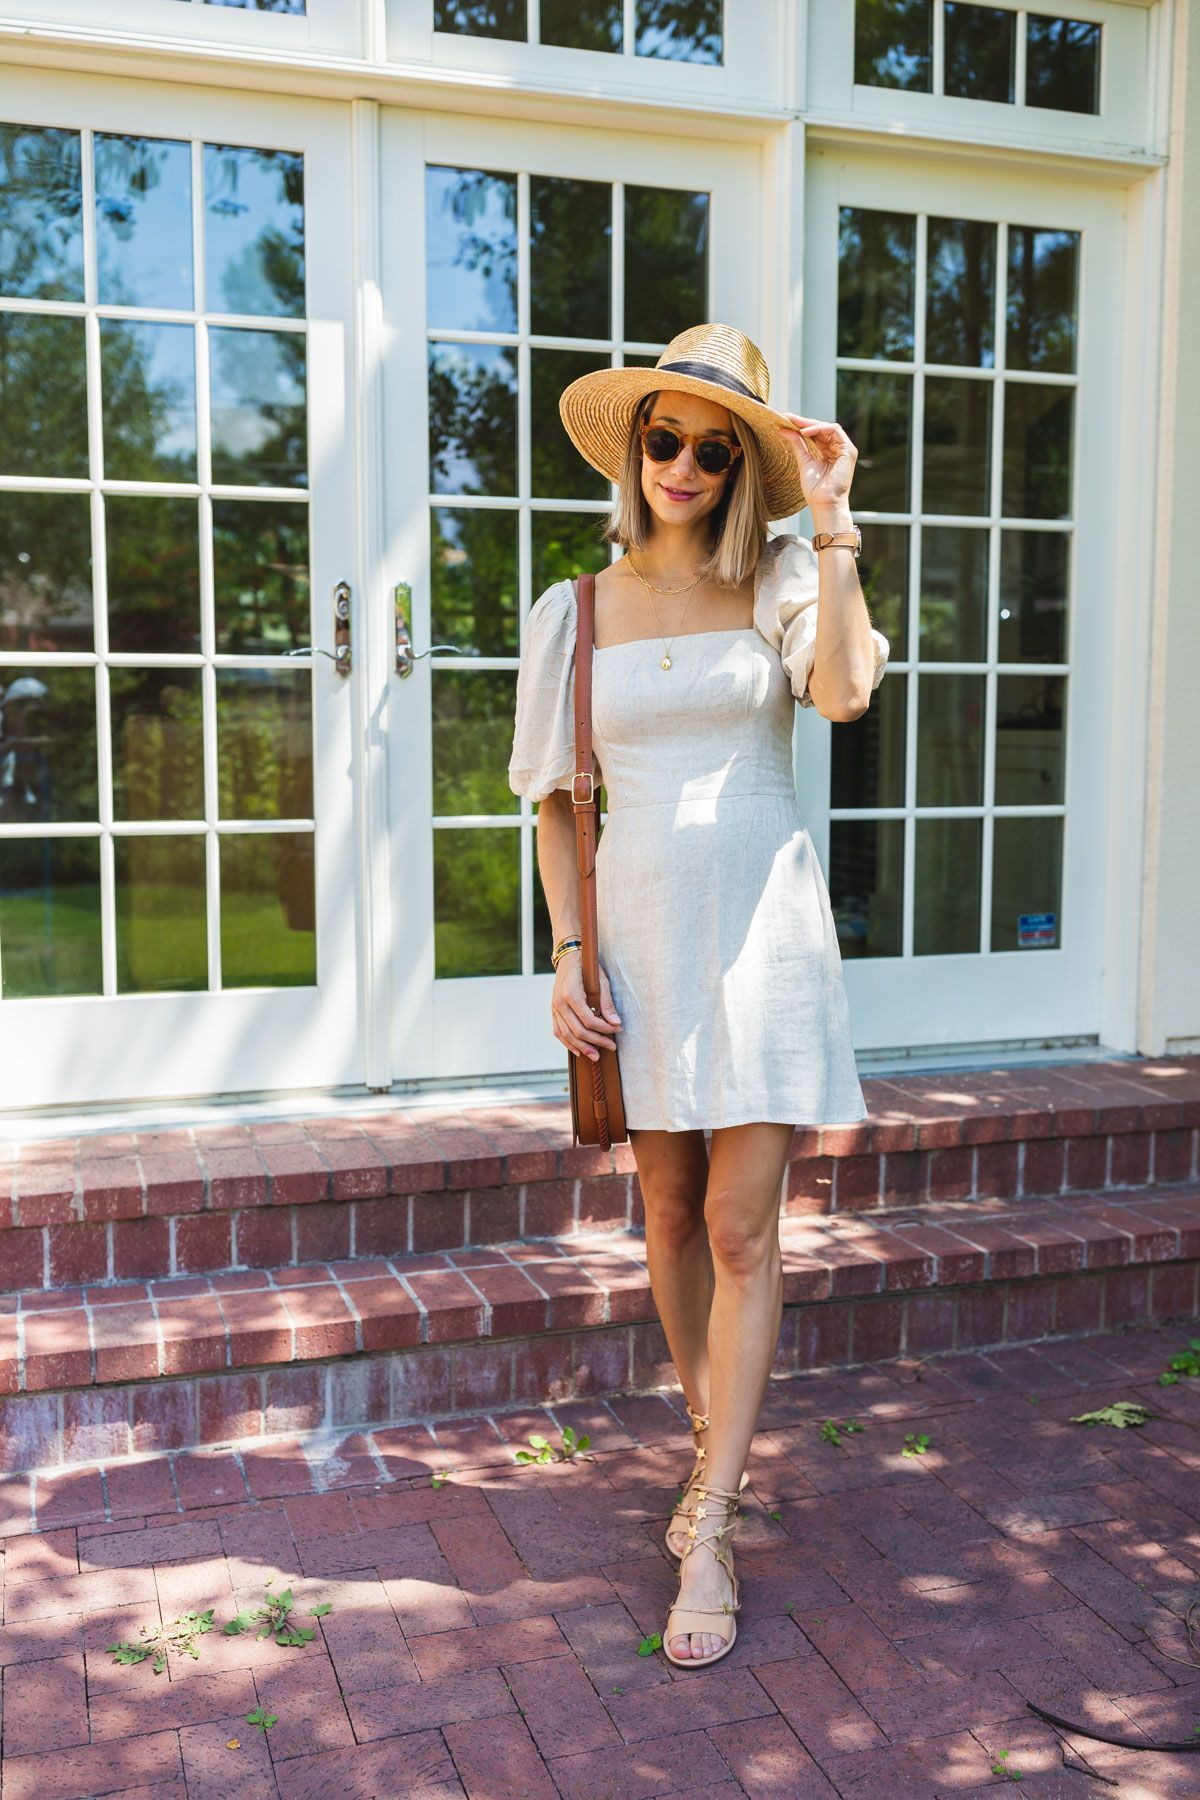 How to Style a Linen Dress - The Fox & She #summerootd #styletips #outfitideas